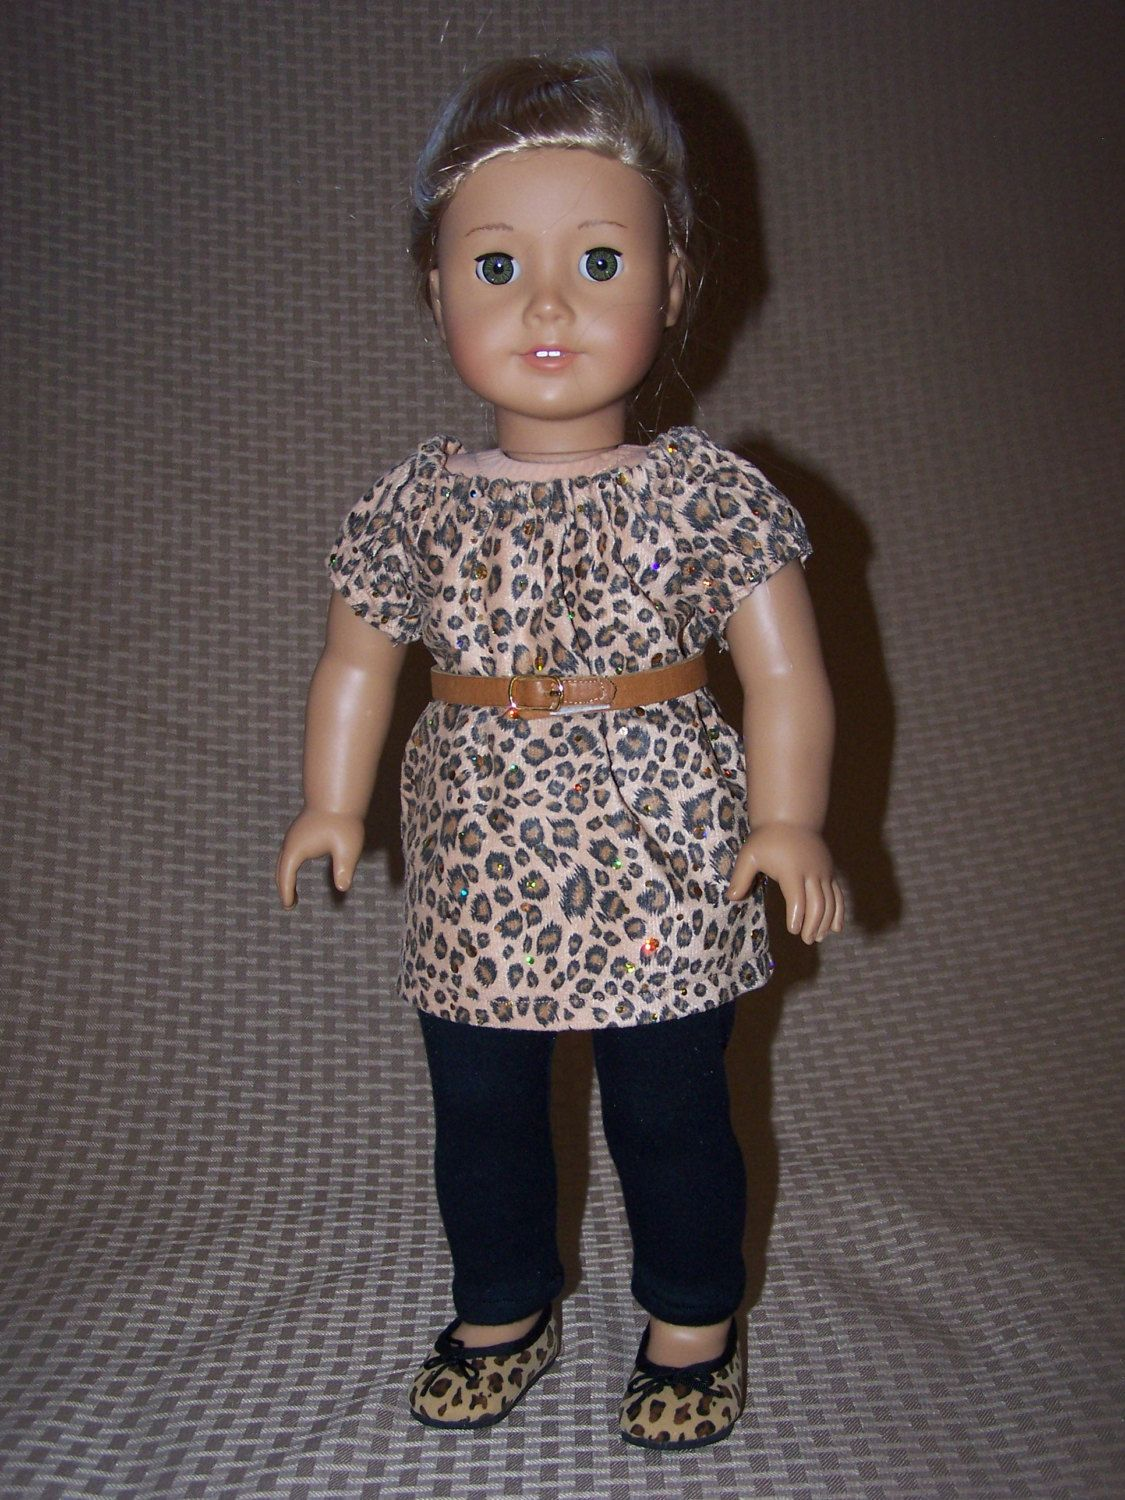 """18"""" Doll Clothes: Cheetah Peasant Top with Belt, Black Leggings and Cheetah Ballet Flats Outfit for American Girl by ICImagination on Etsy"""